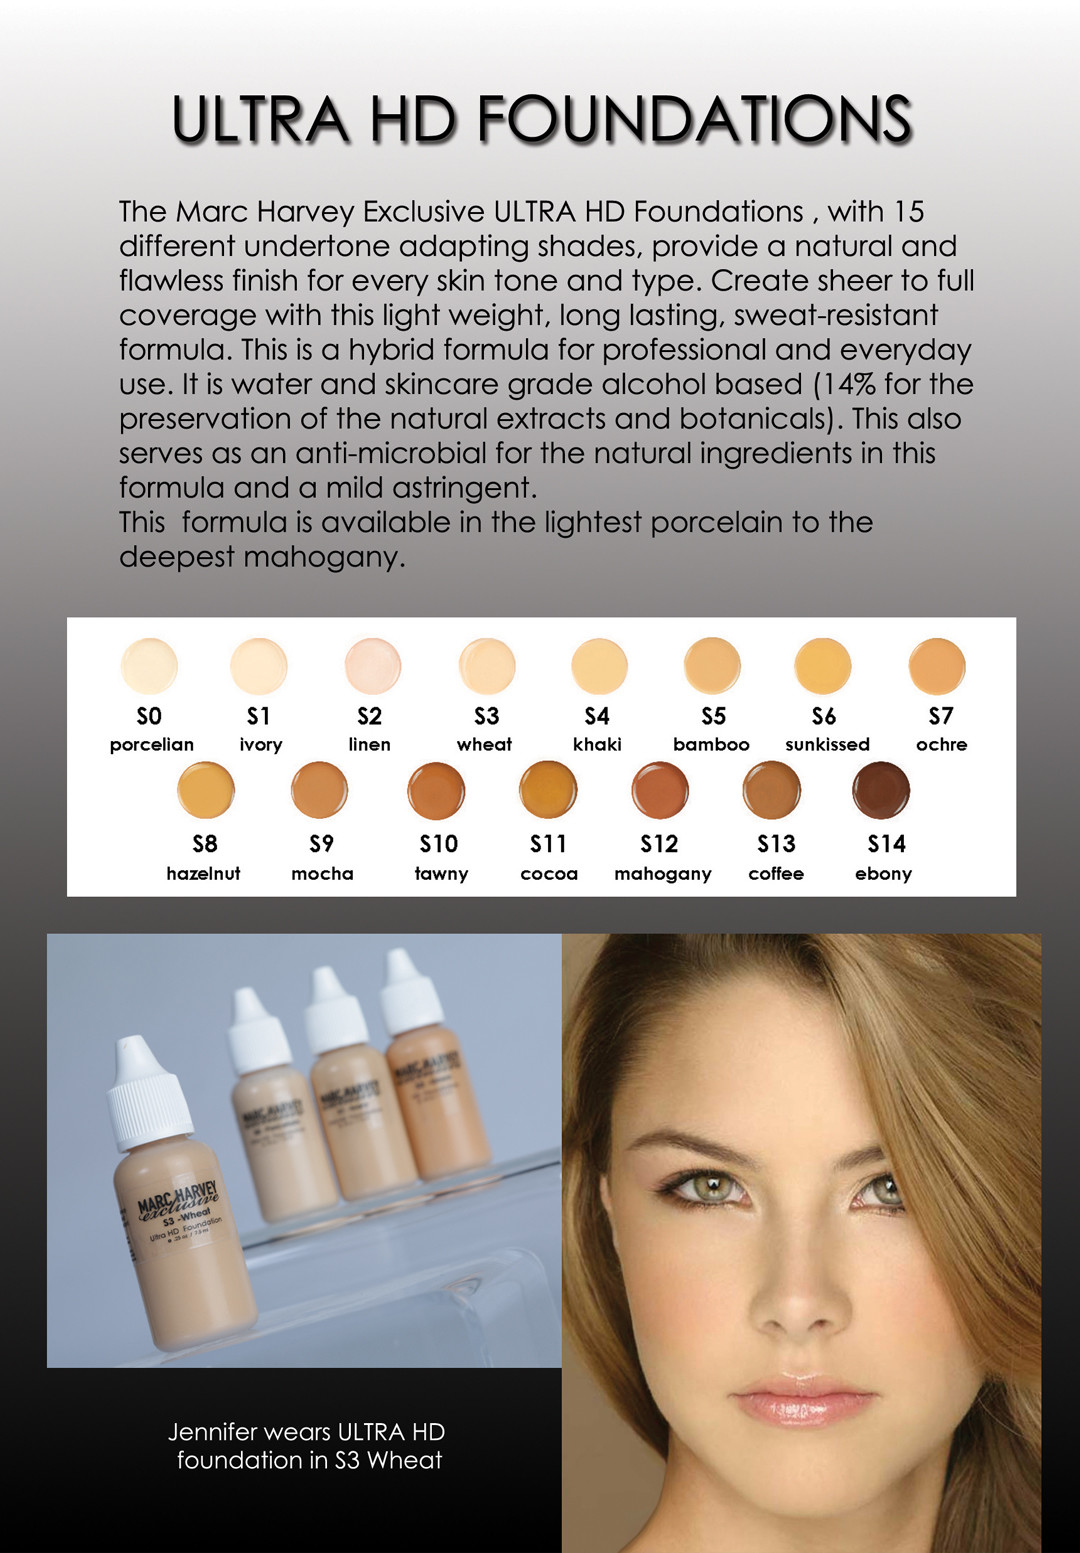 Ultra HD Foundations